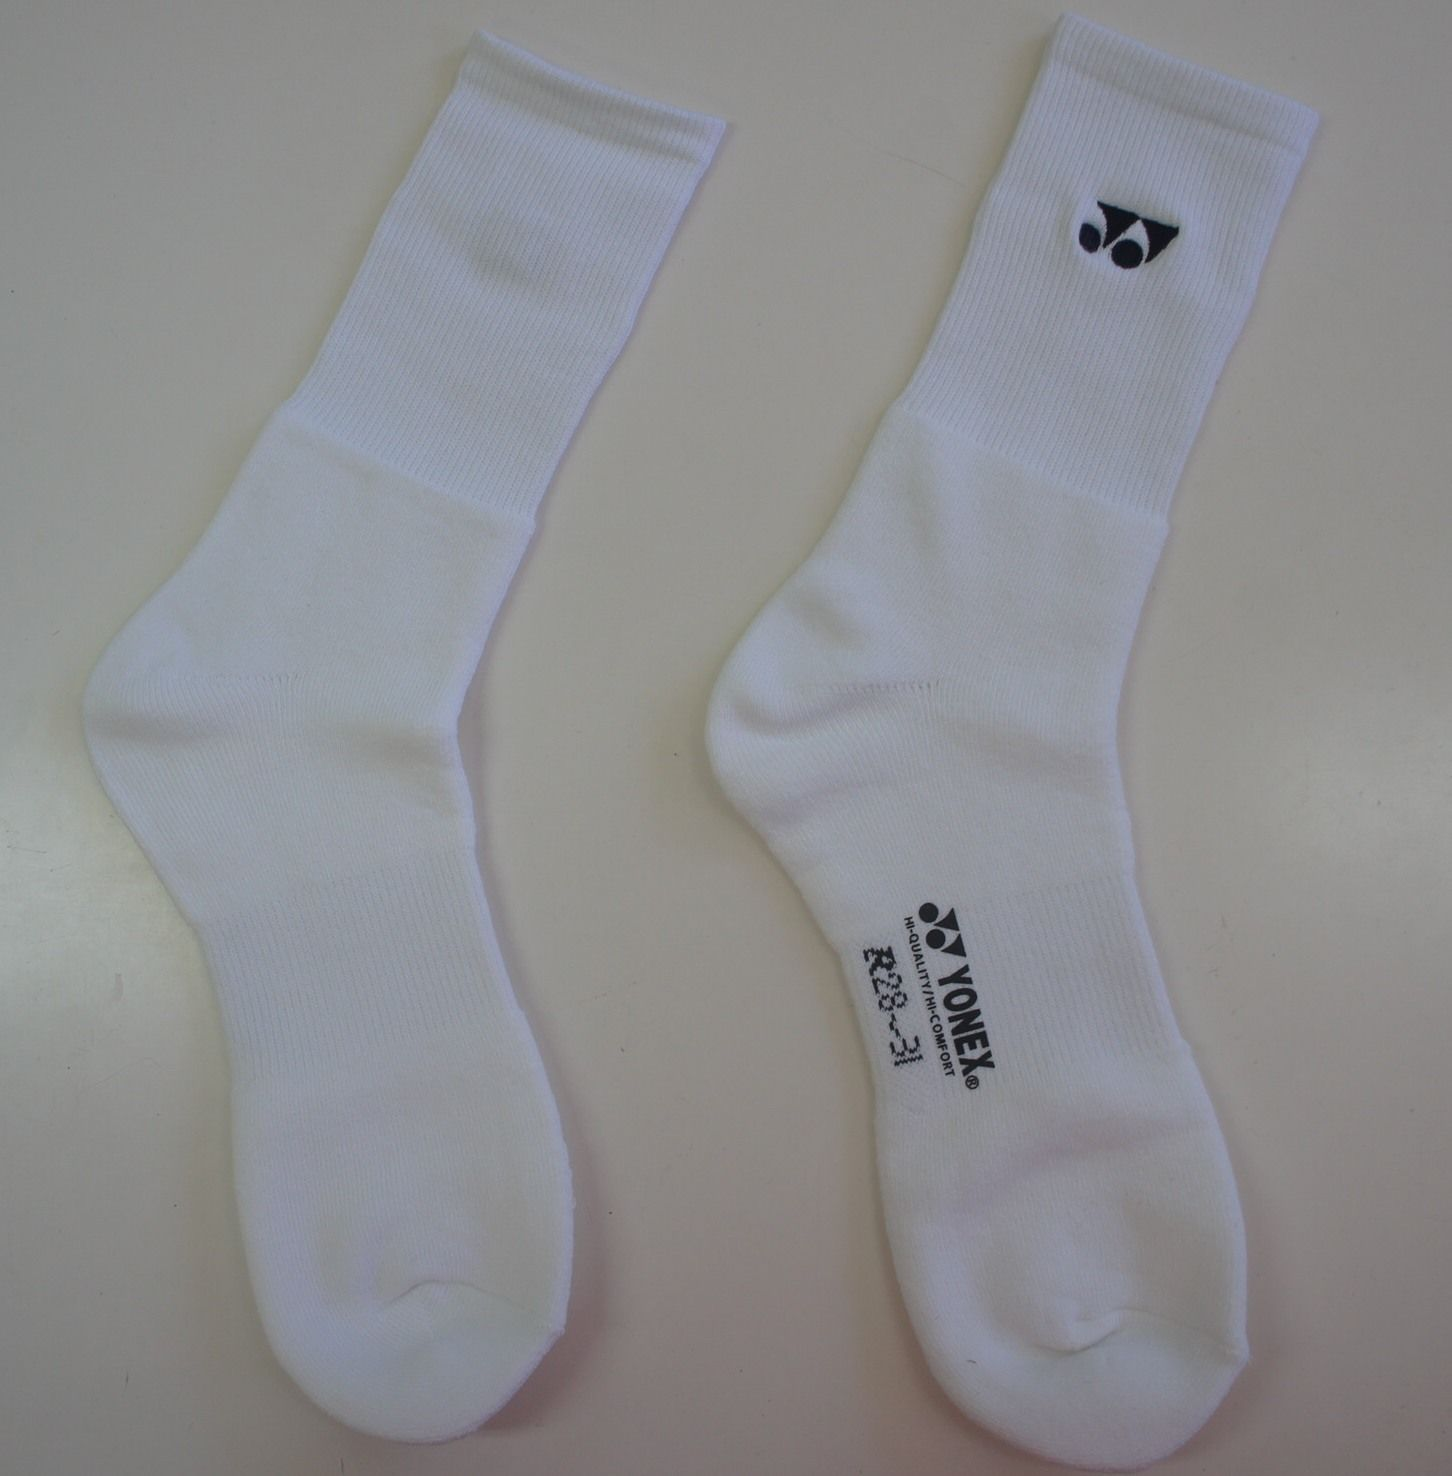 736519ad6 2 Pairs Yonex Mens Sports Socks 1855 - Badminton Store